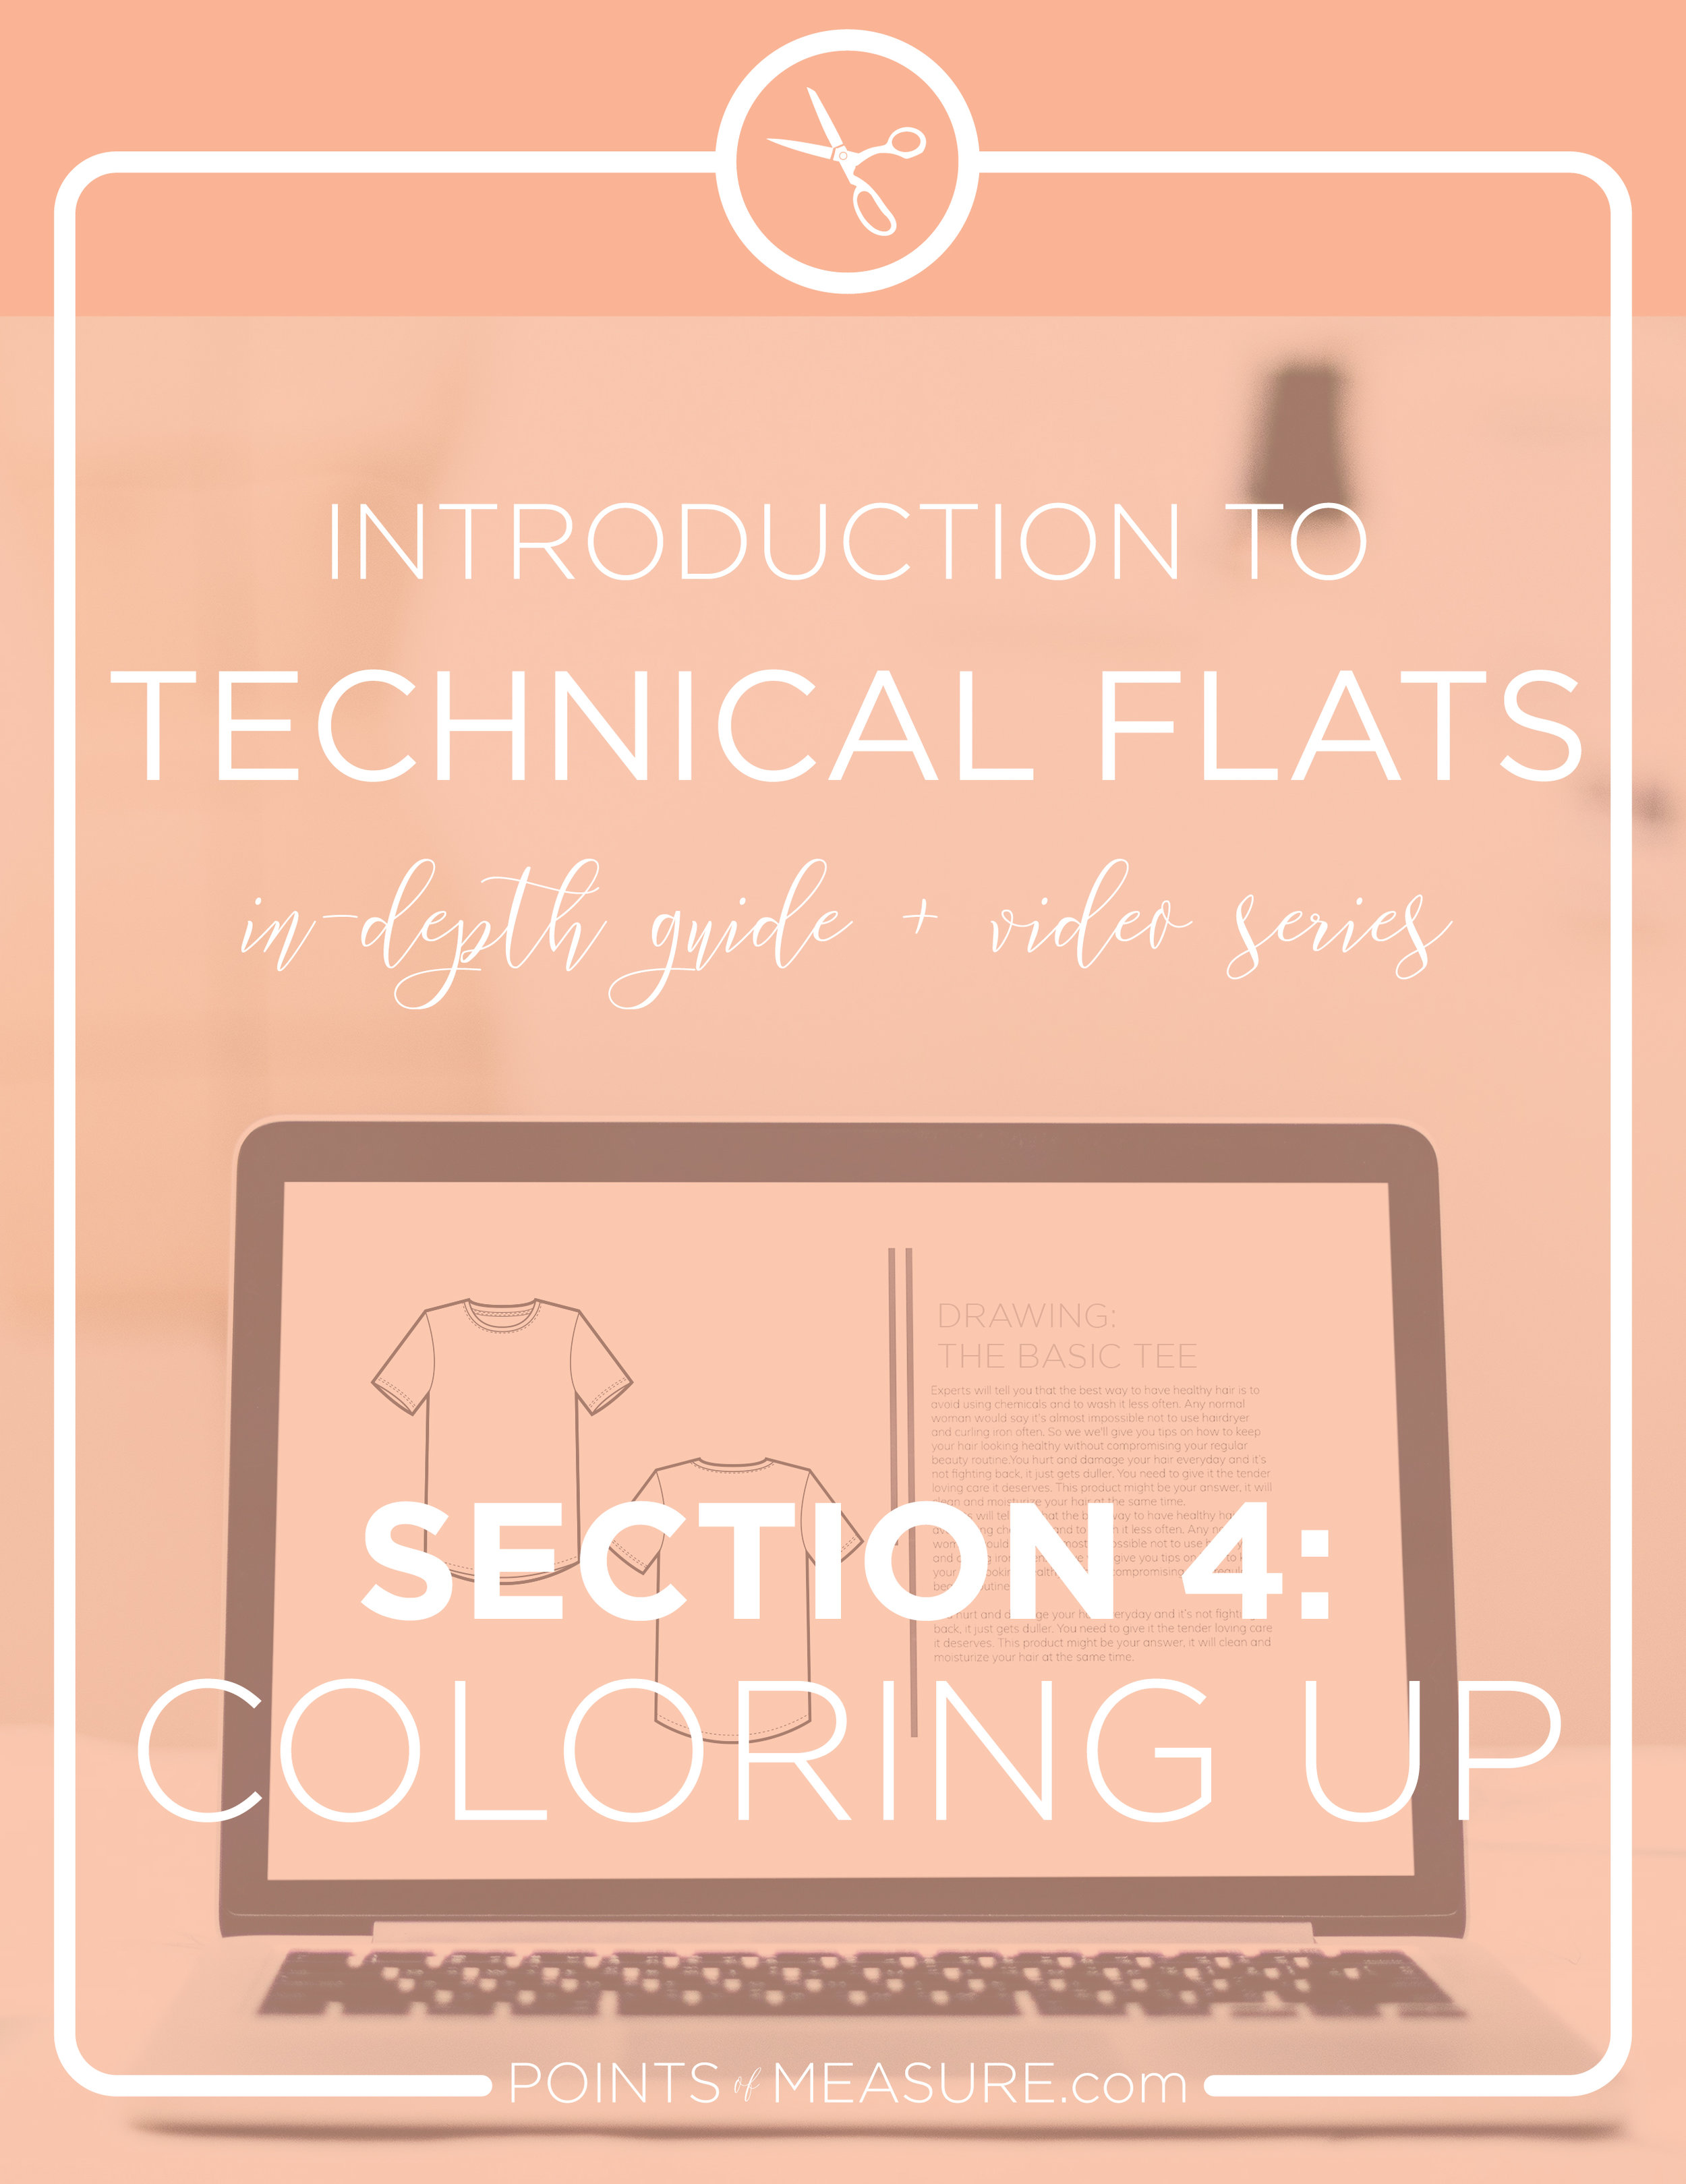 introduction-to-technical-flats-section-4-coloring-up-points-of-measure.jpg